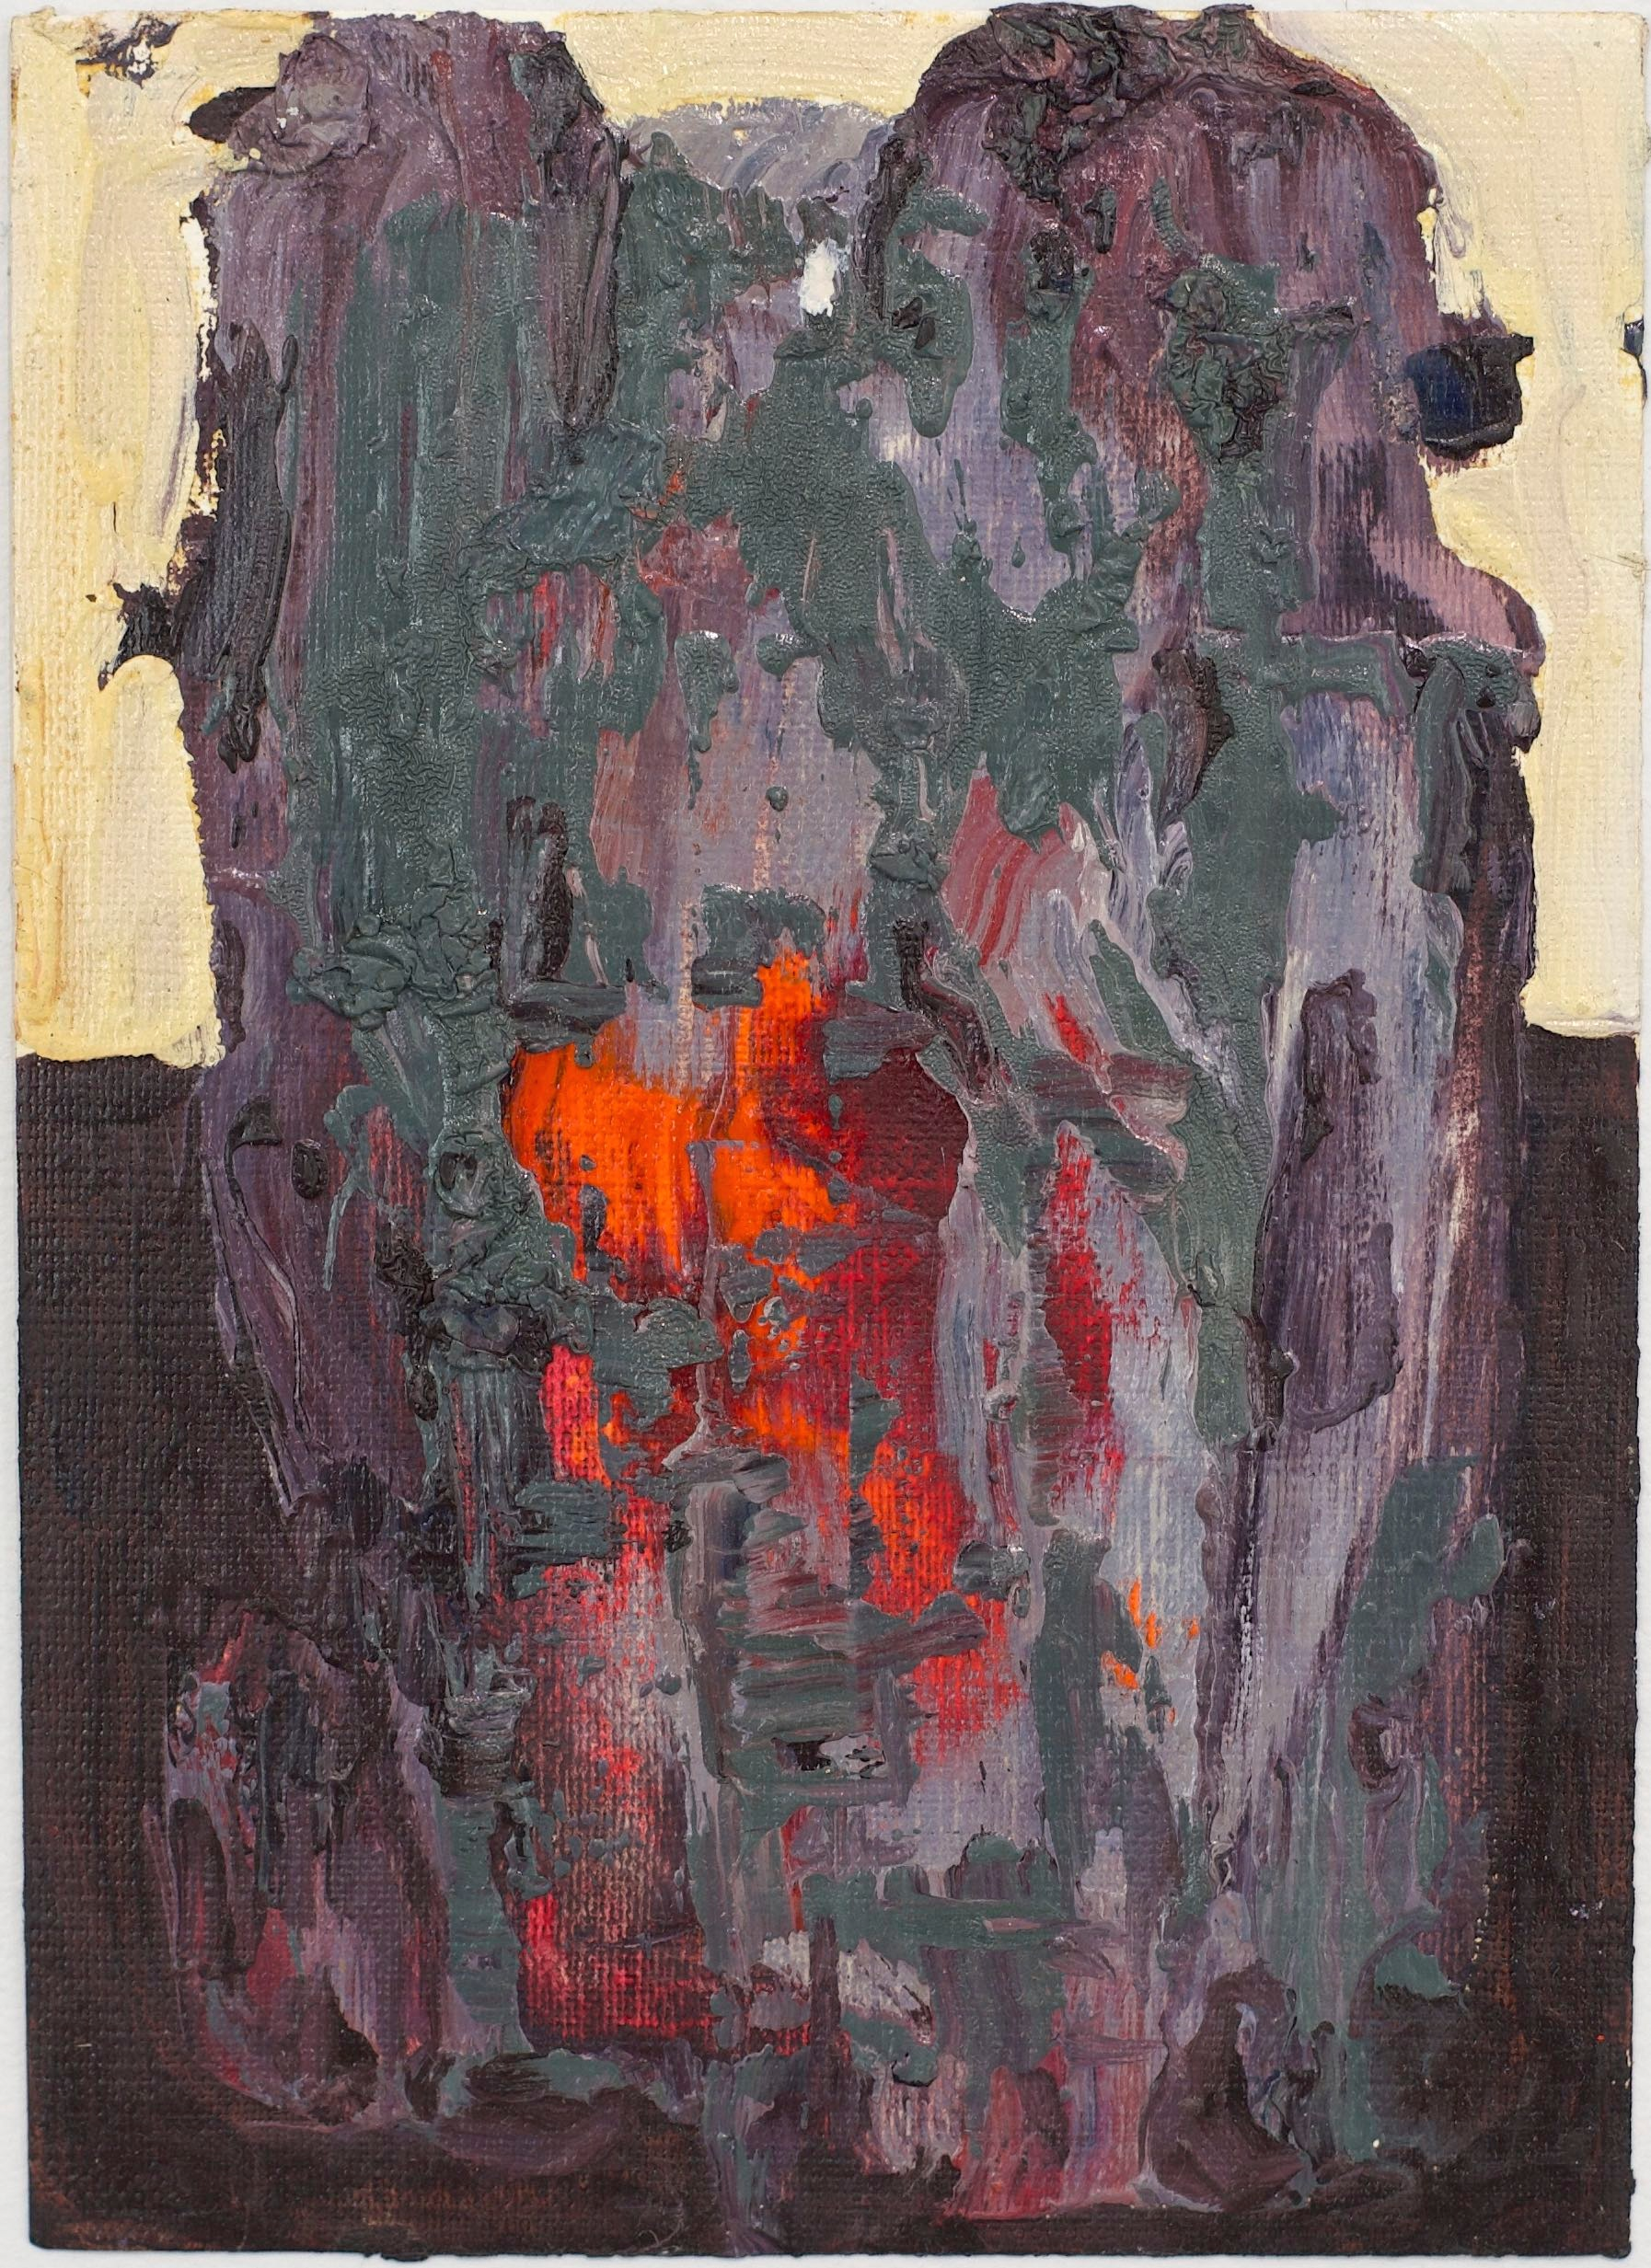 2015 / oil on paper / 7 x 5.1 inches / 18 x 13 cm